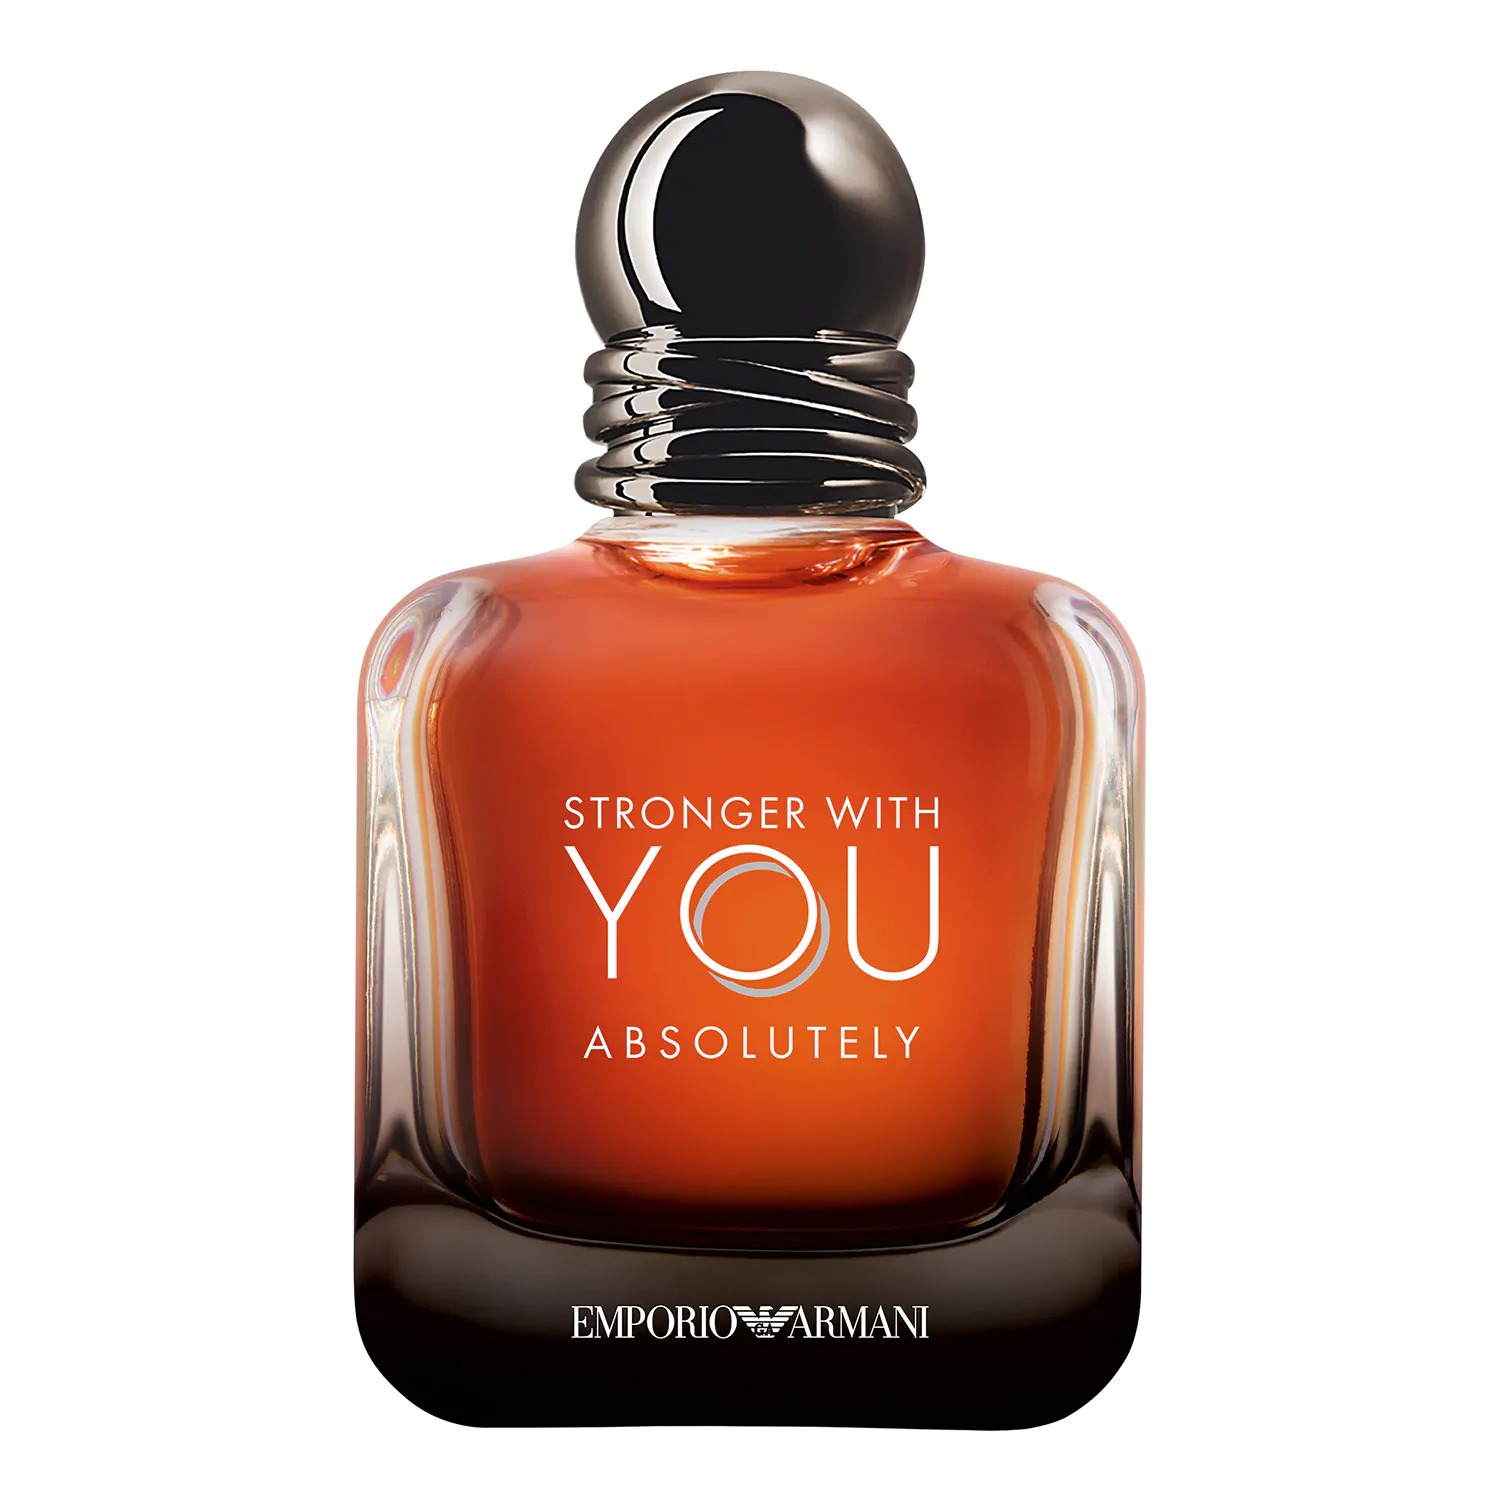 Emporio Armani Stronger With You Absotulety